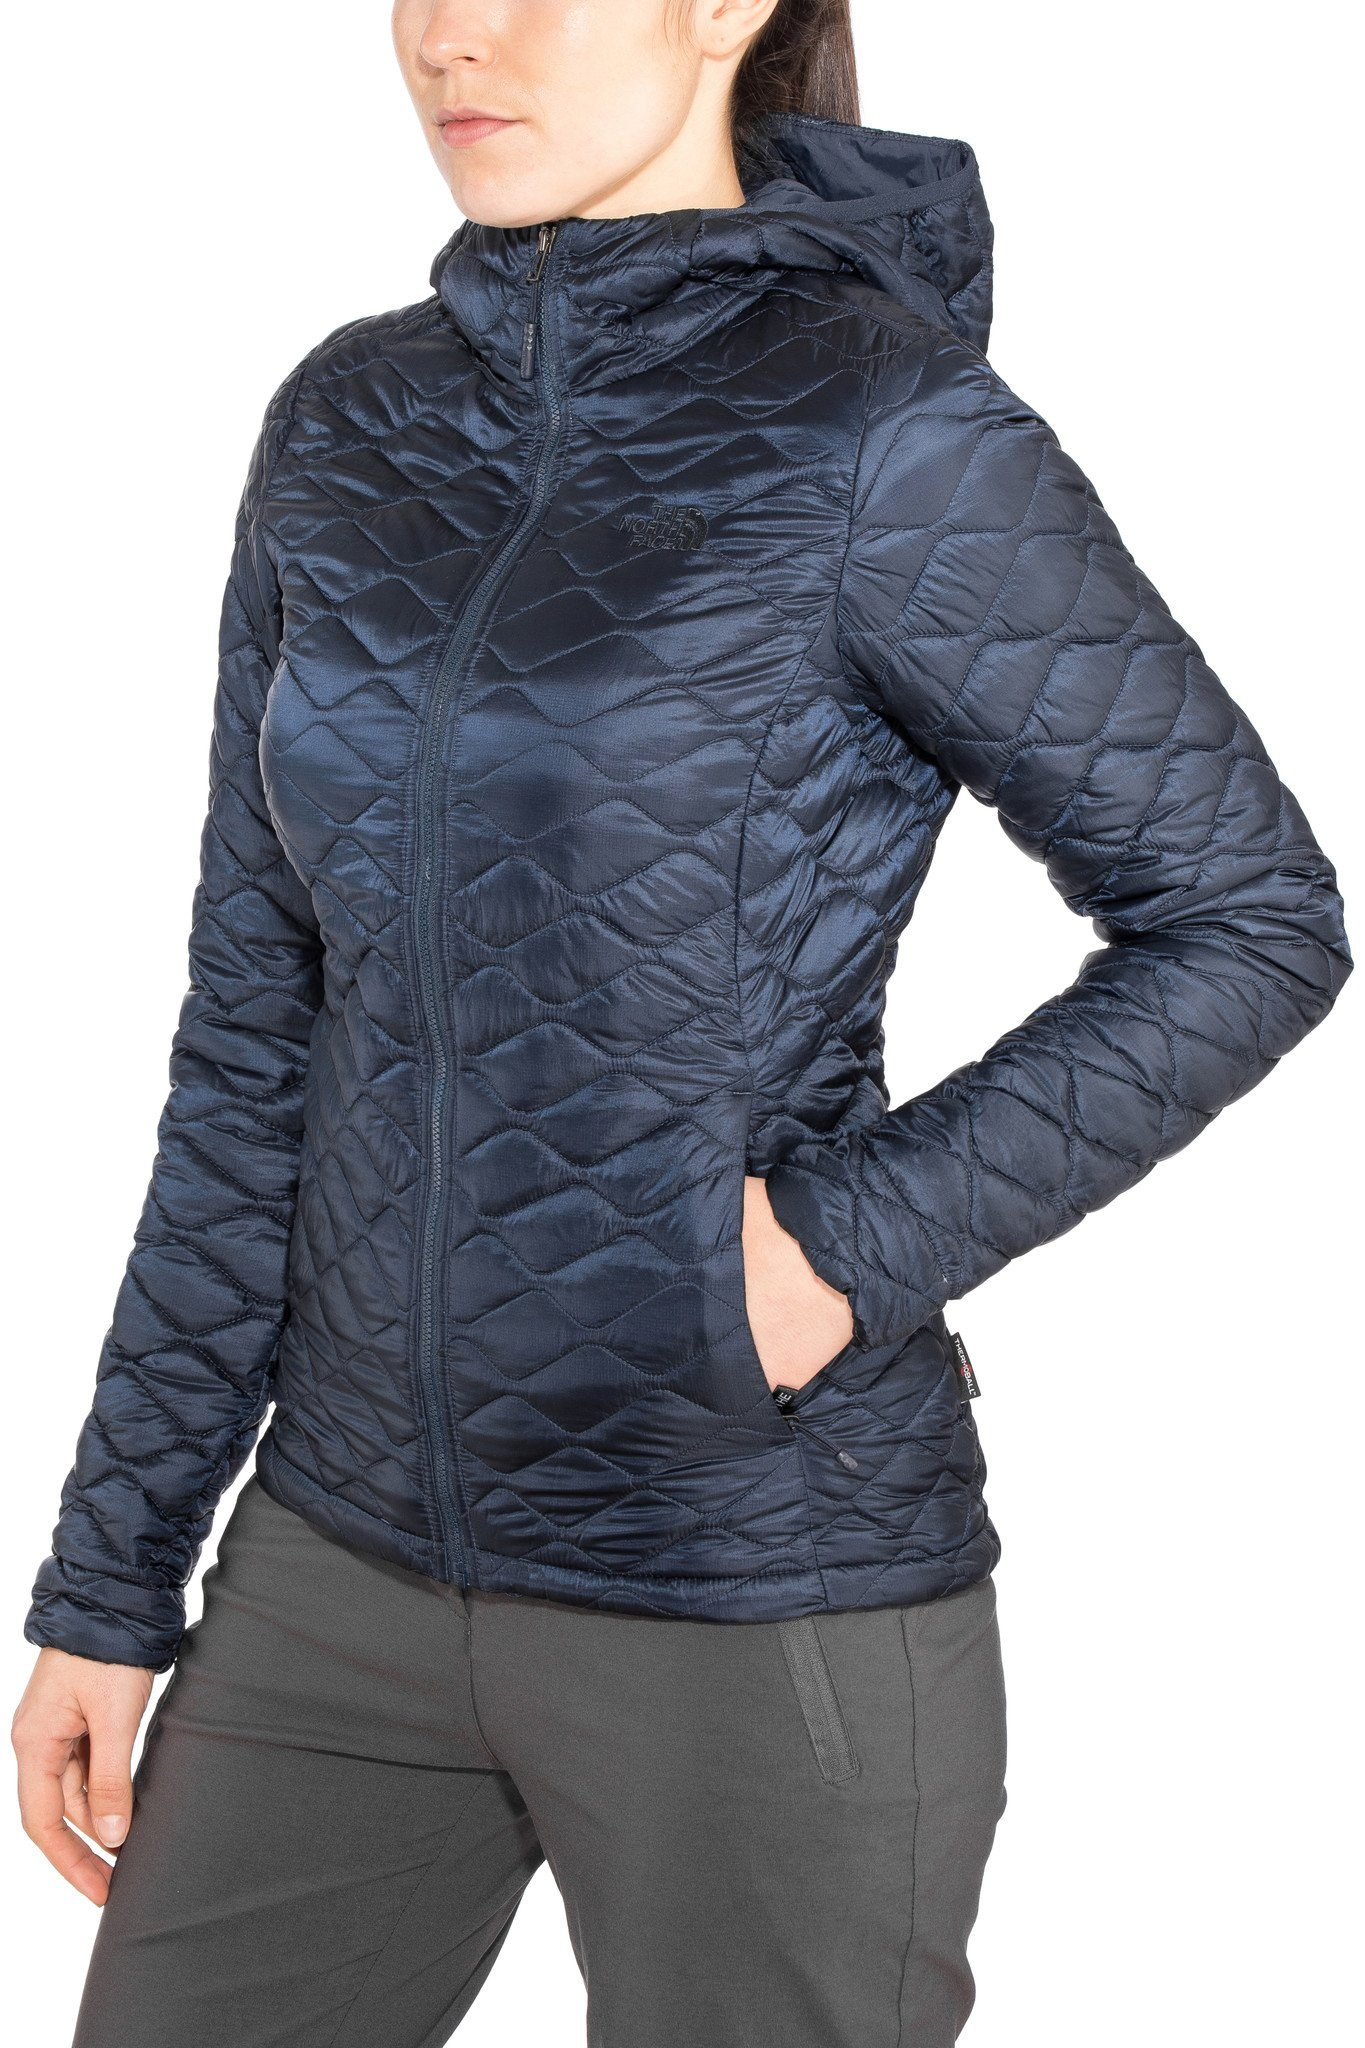 Damen The North Face Outdoorjacke »Thermoball Pro Hoodie Jacket Damen« blau | 00191930352168